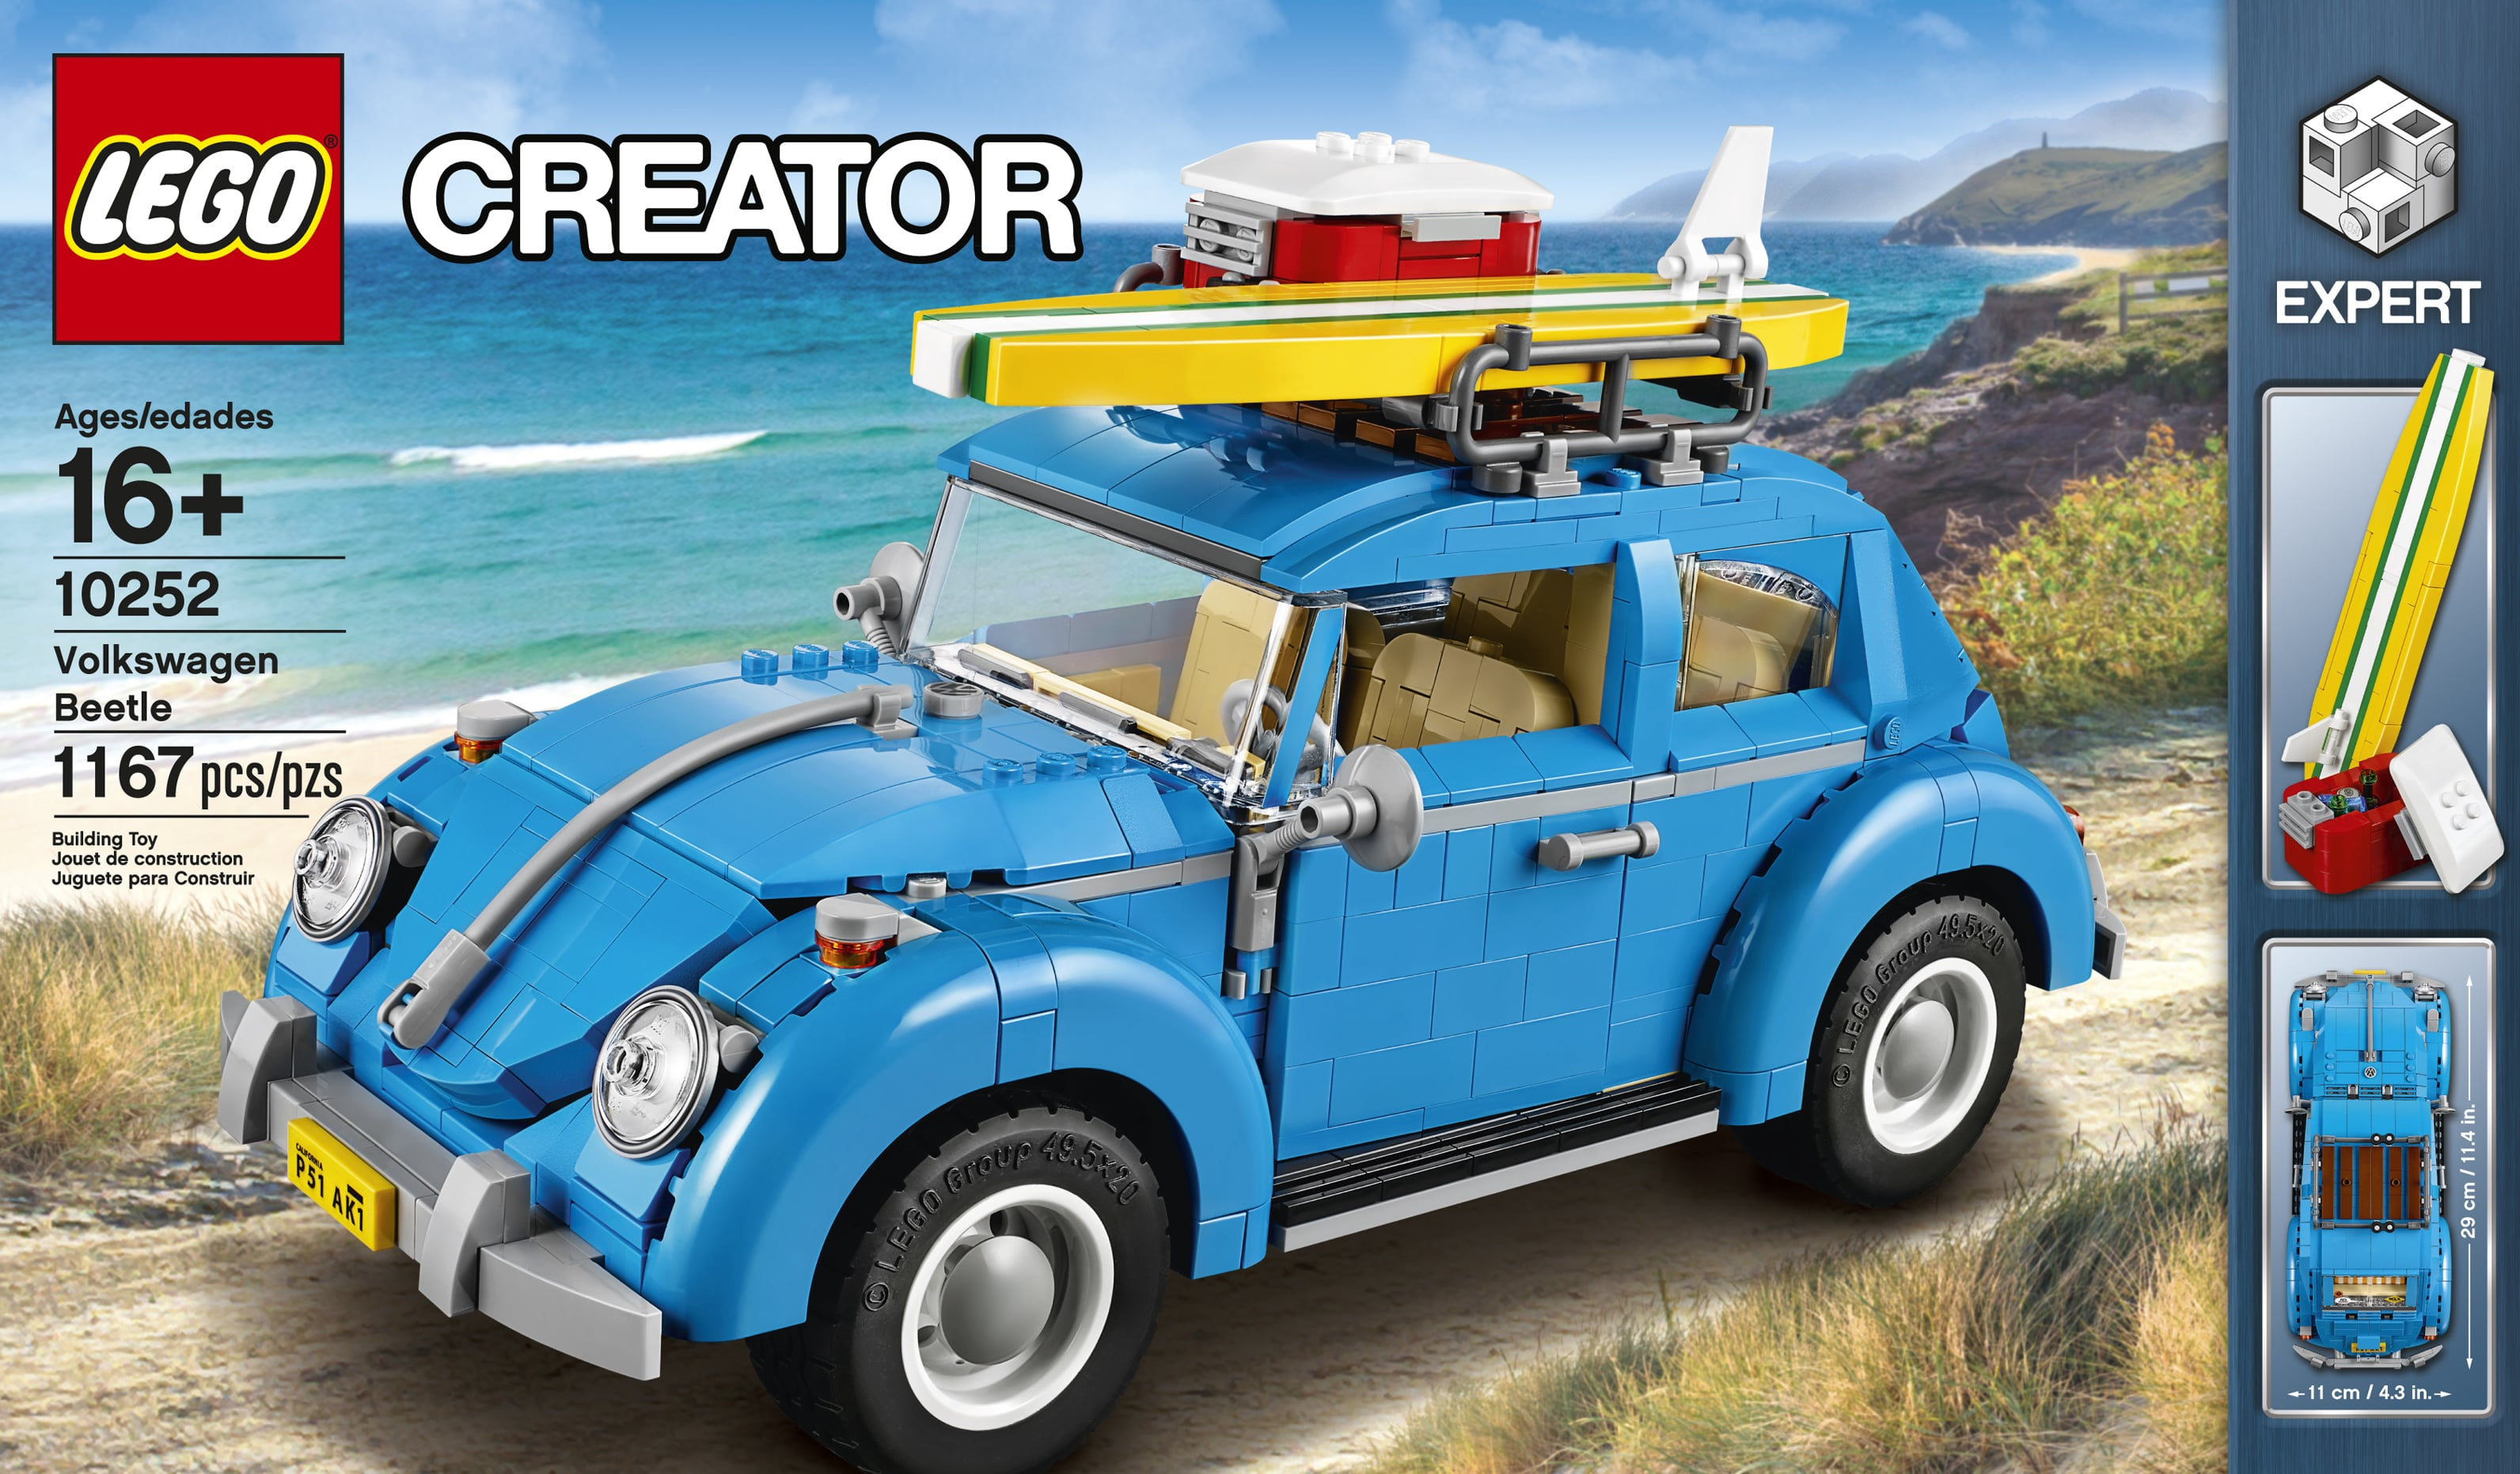 lego creator expert 10252 volkswagen beetle l 39 annonce officielle hellobricks blog lego. Black Bedroom Furniture Sets. Home Design Ideas